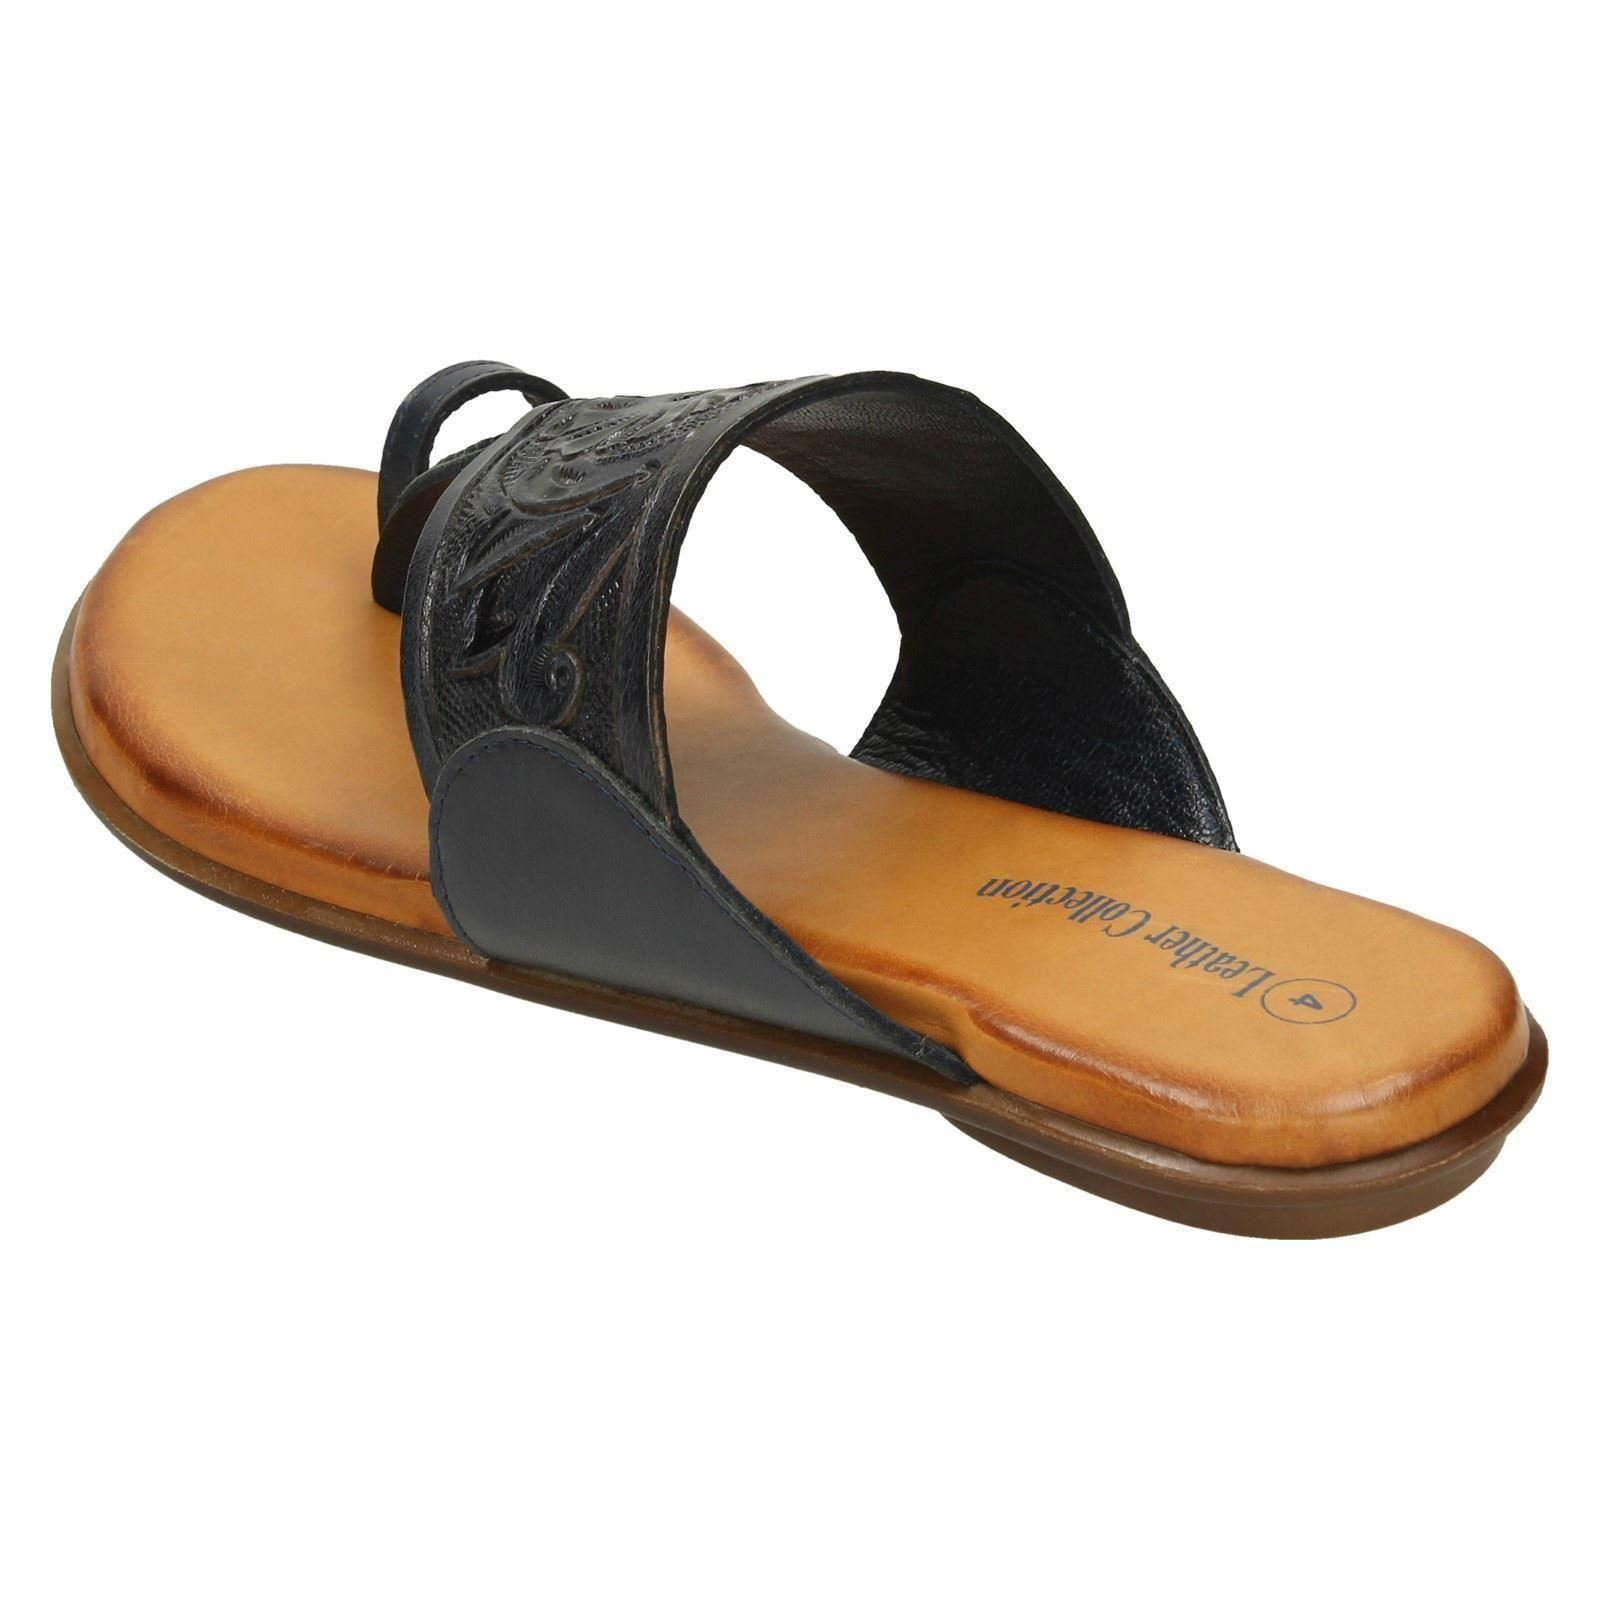 ef889810739 Ladies-Leather-Collection-Flat-Toe-Loop-Sandals thumbnail 17